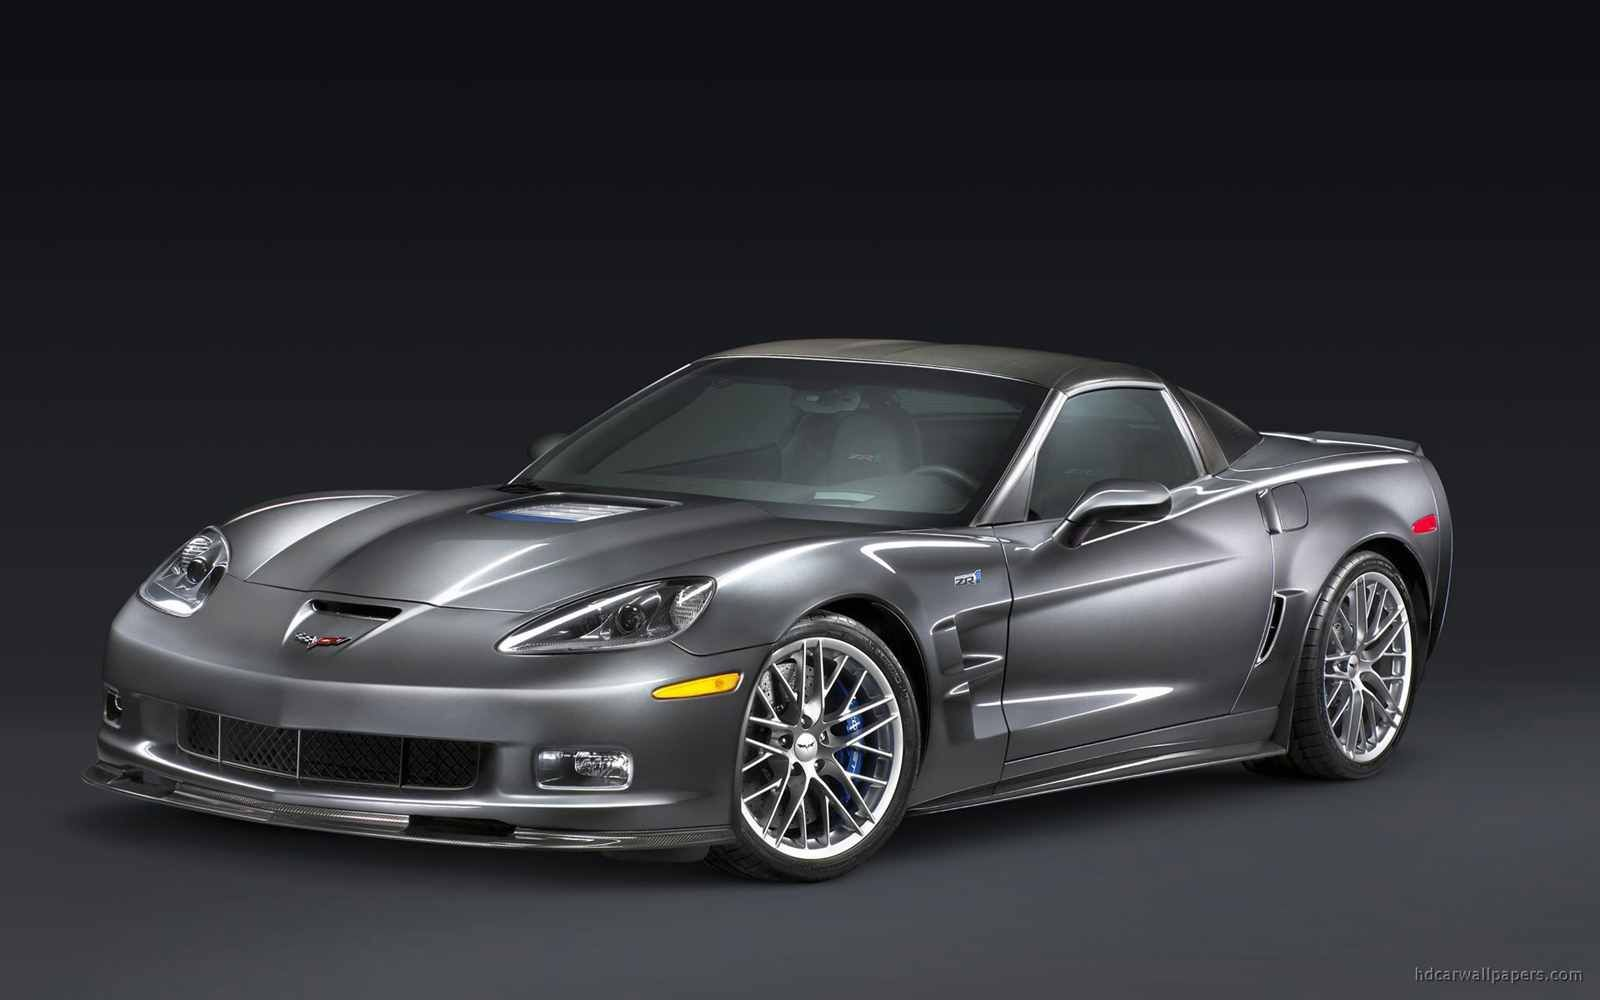 2009 Chevrolet Corvette Zr1 3 Car Wallpaper Carros Chevrolet